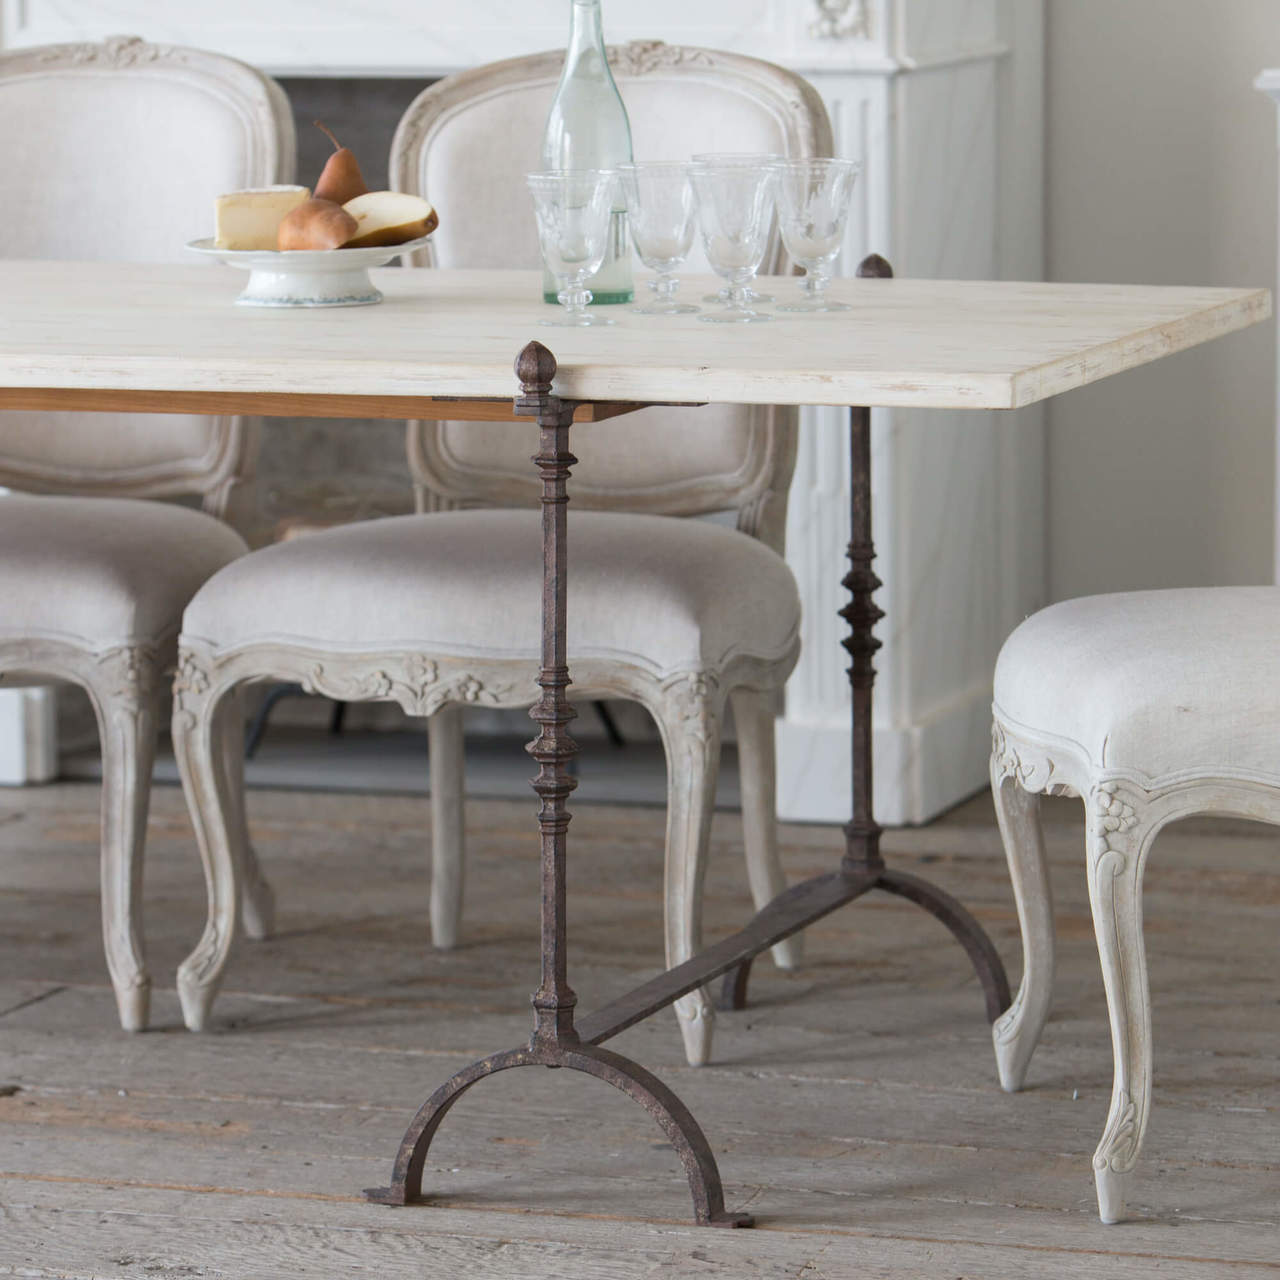 Eloquence® Grande St. Remy Table in Pickled White Finish